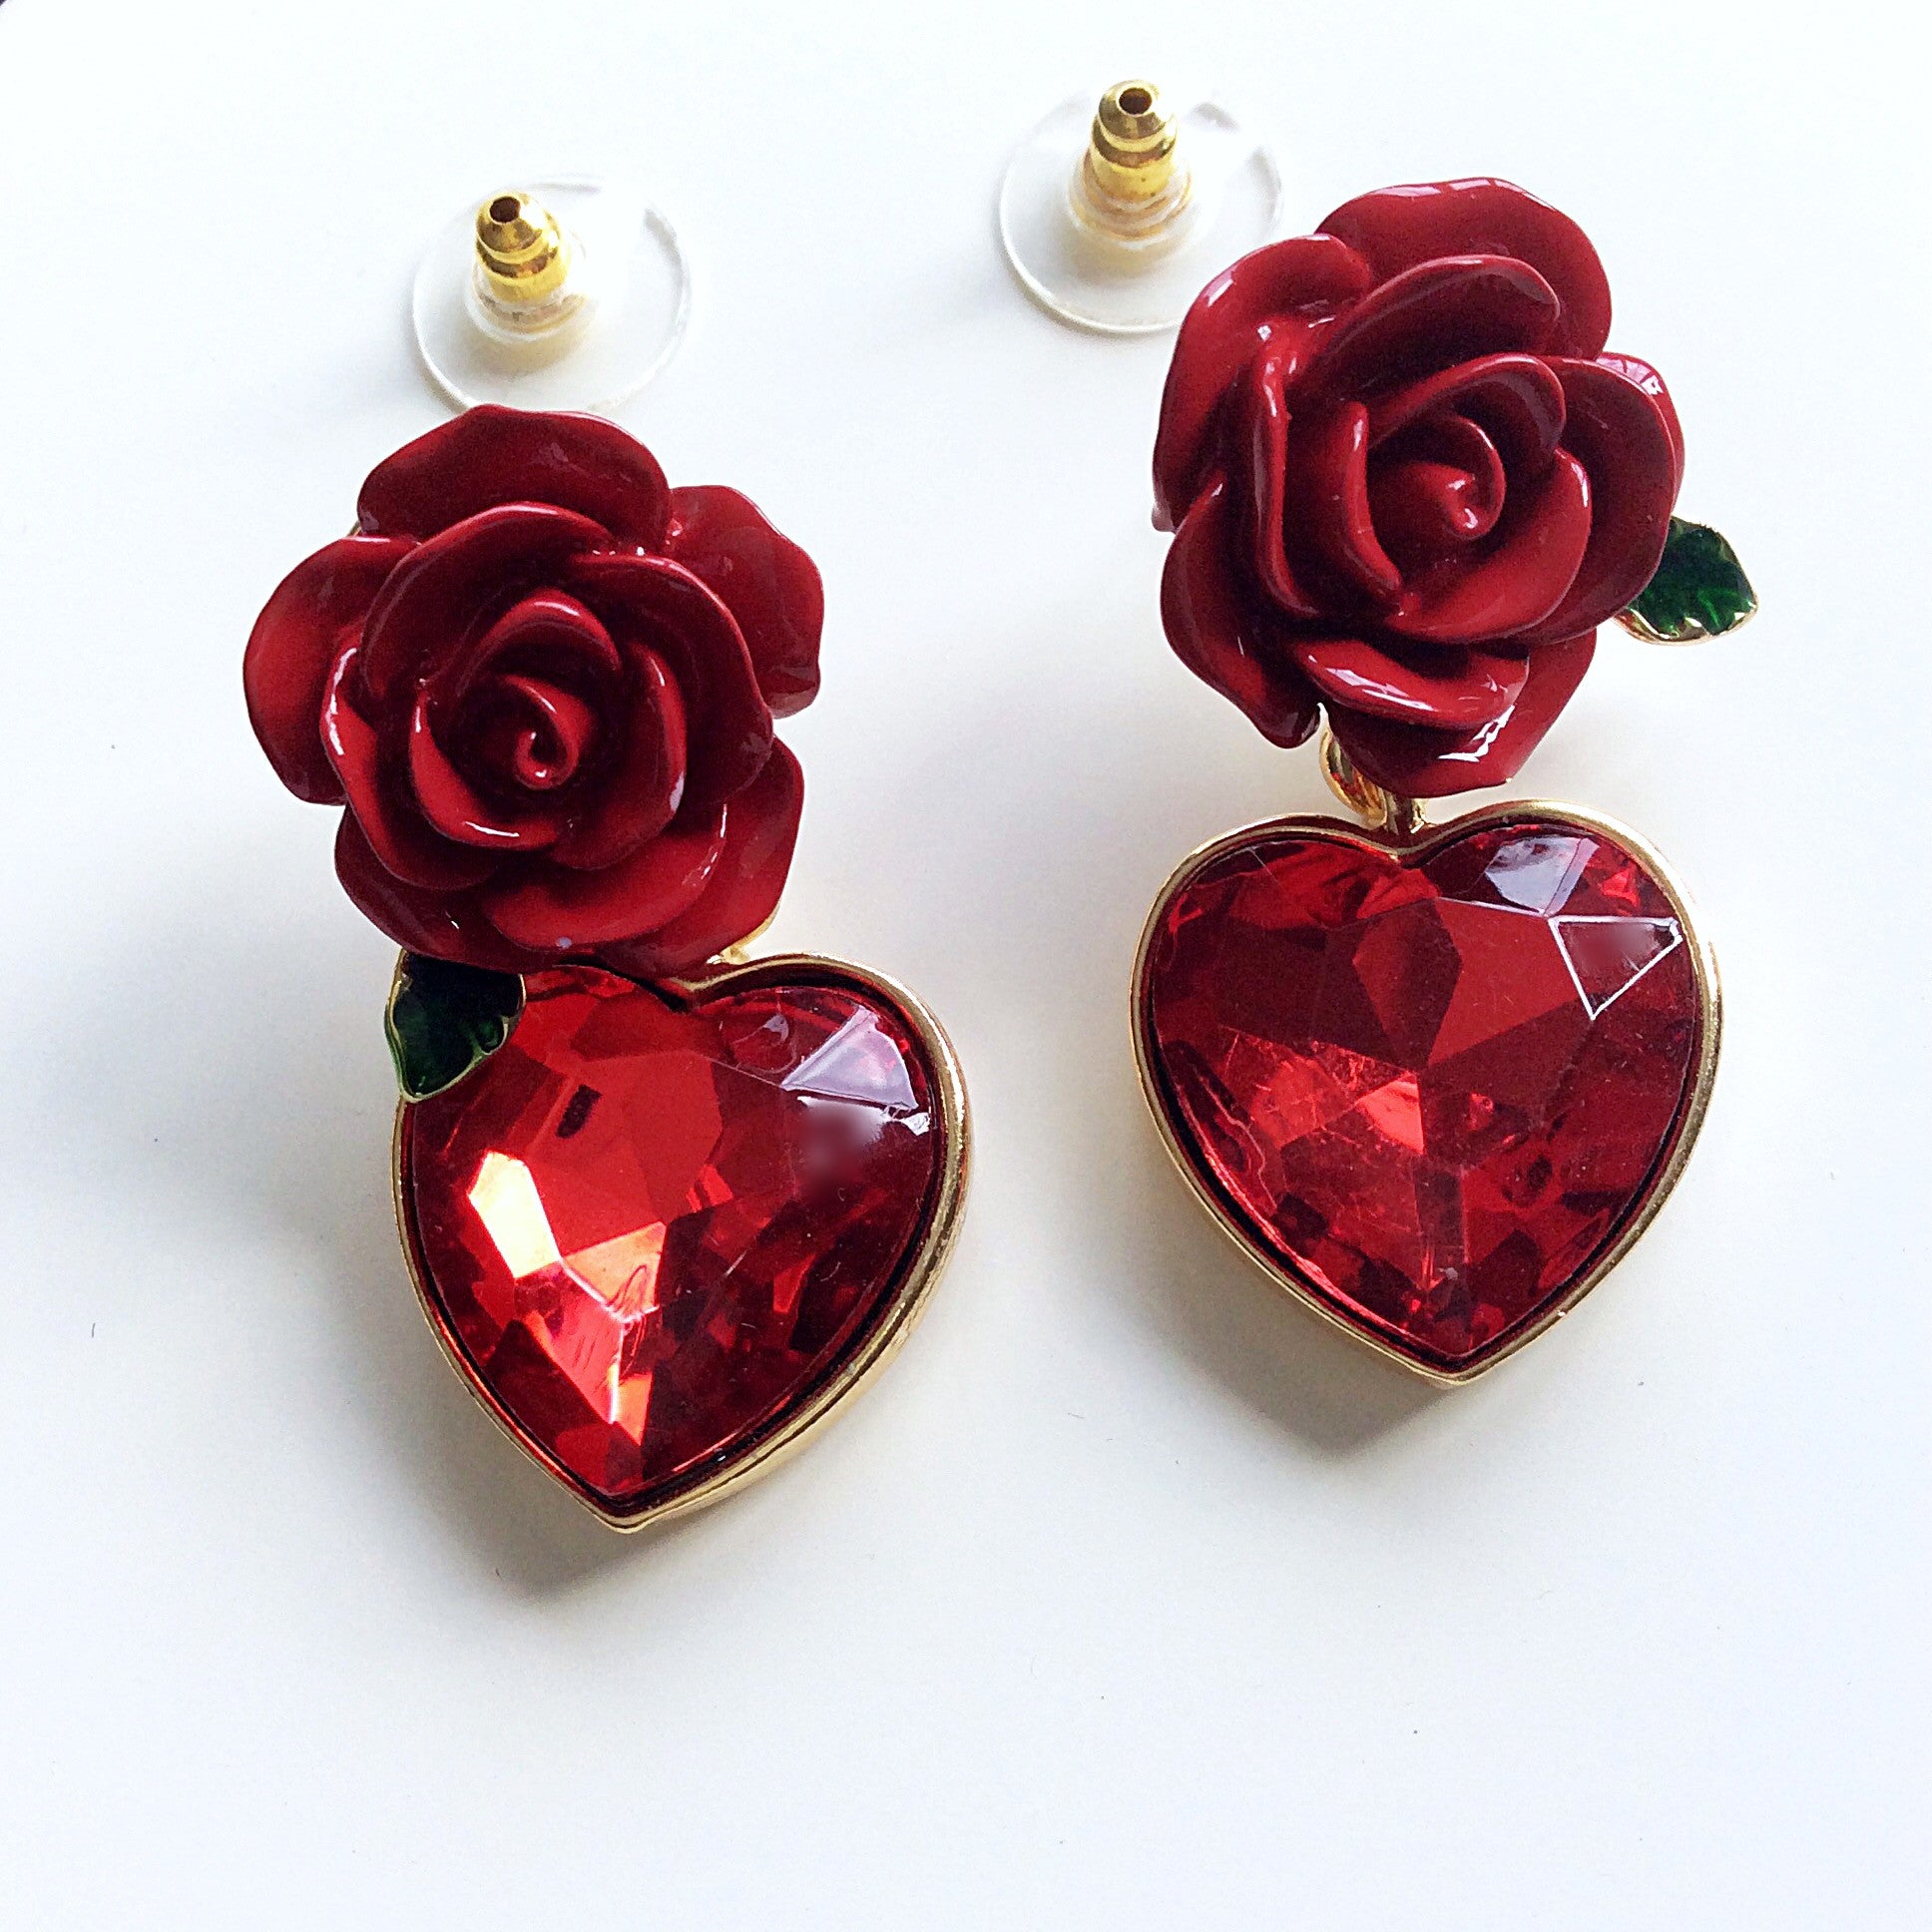 Deep red rose heart diamant pendant earrings littledreamer uk deep red rose heart diamant pendant earrings mozeypictures Choice Image